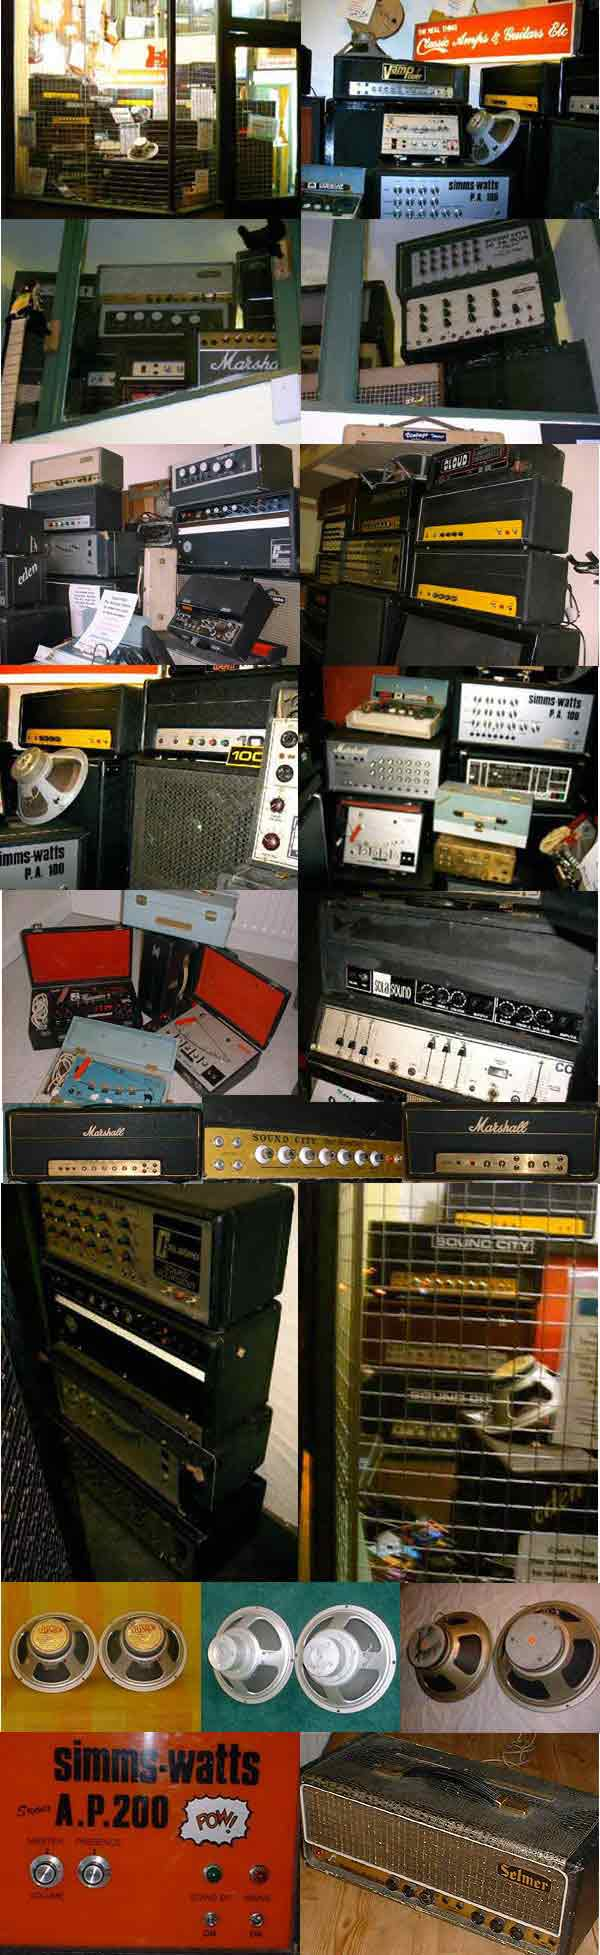 Vintage & rare collectable Selmer Matamp Marshall Vox Fender Wem Park Orange Burns Marshall Sound City Hiwatt. Vintage & Rare Collectable Tube amp heads, Tube Amp Combos, Used Guitar Amps Spares, vacuum tubes, Guitar Amp Spares, guitar Speakers, guitar Speaker Cabinets, Guitar Pedals, Used Guitars, Guitar Accessories, Guitar Strings, Music Magazines, Vintage Vinyl.